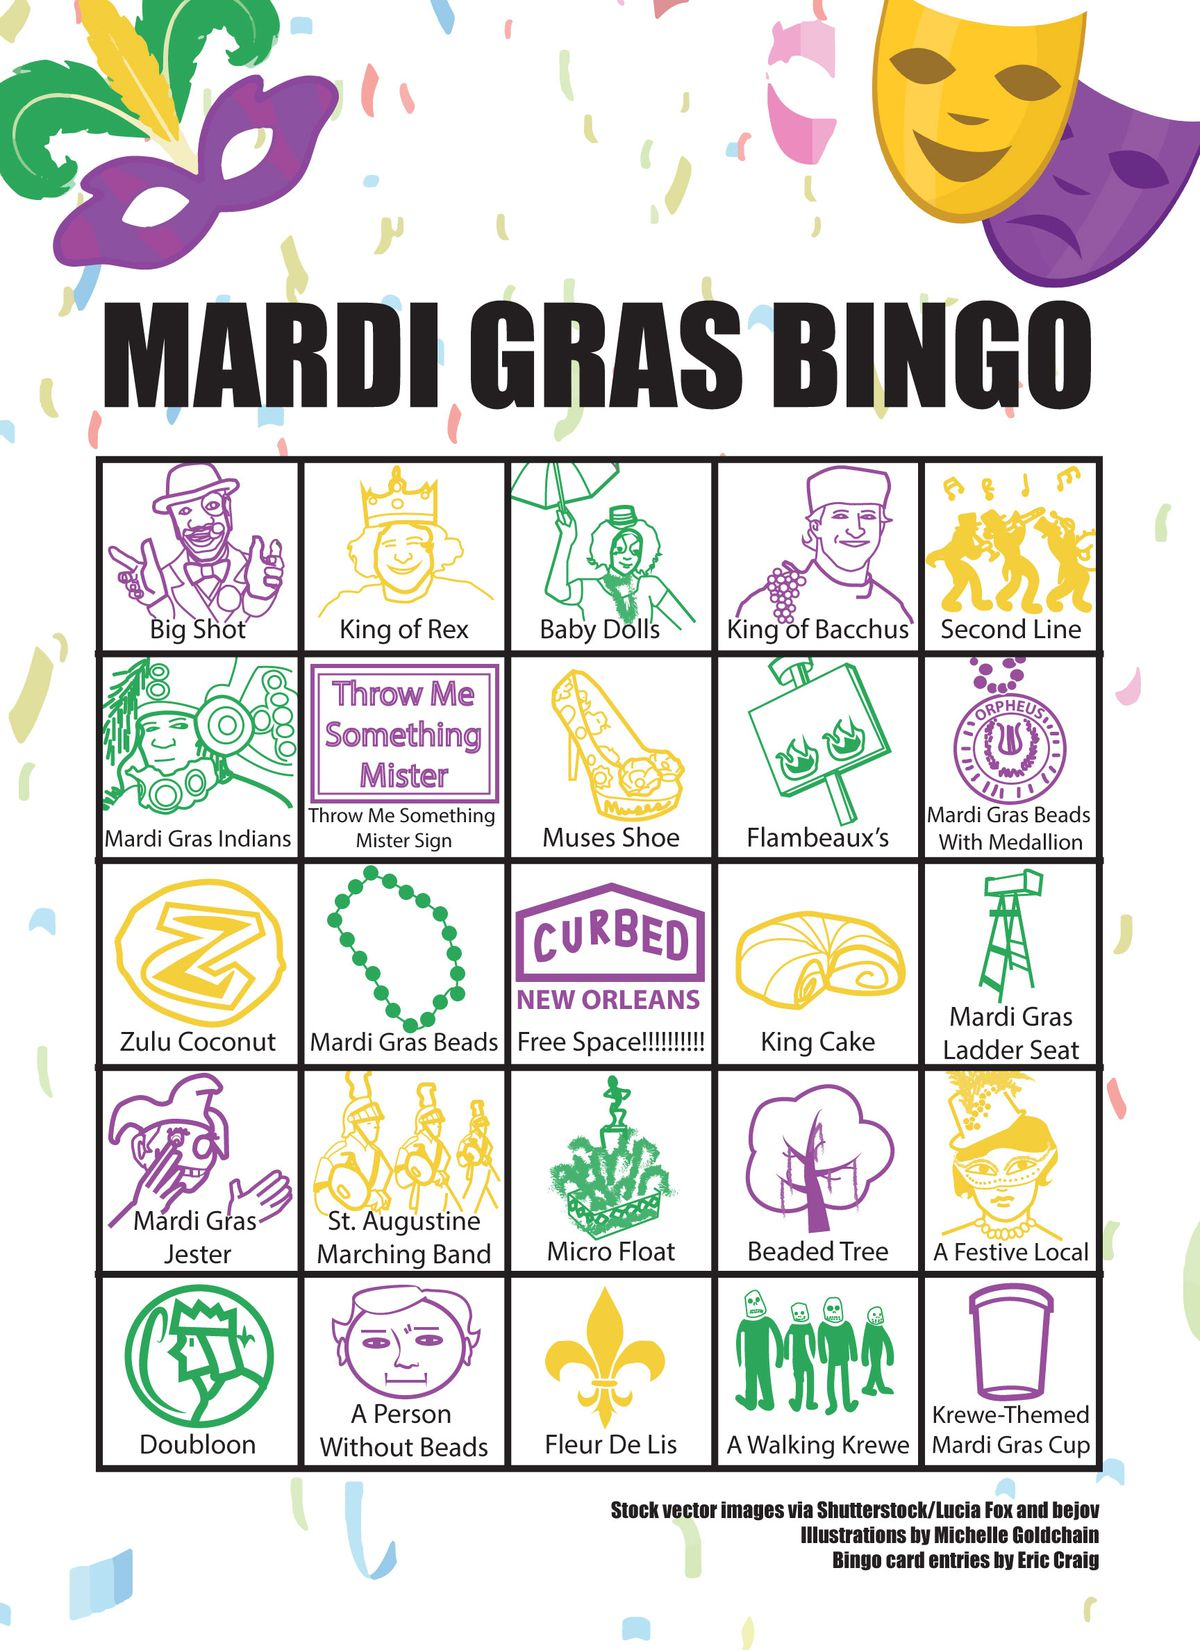 Celebrate Mardi Gras In New Orleans With This Bingo